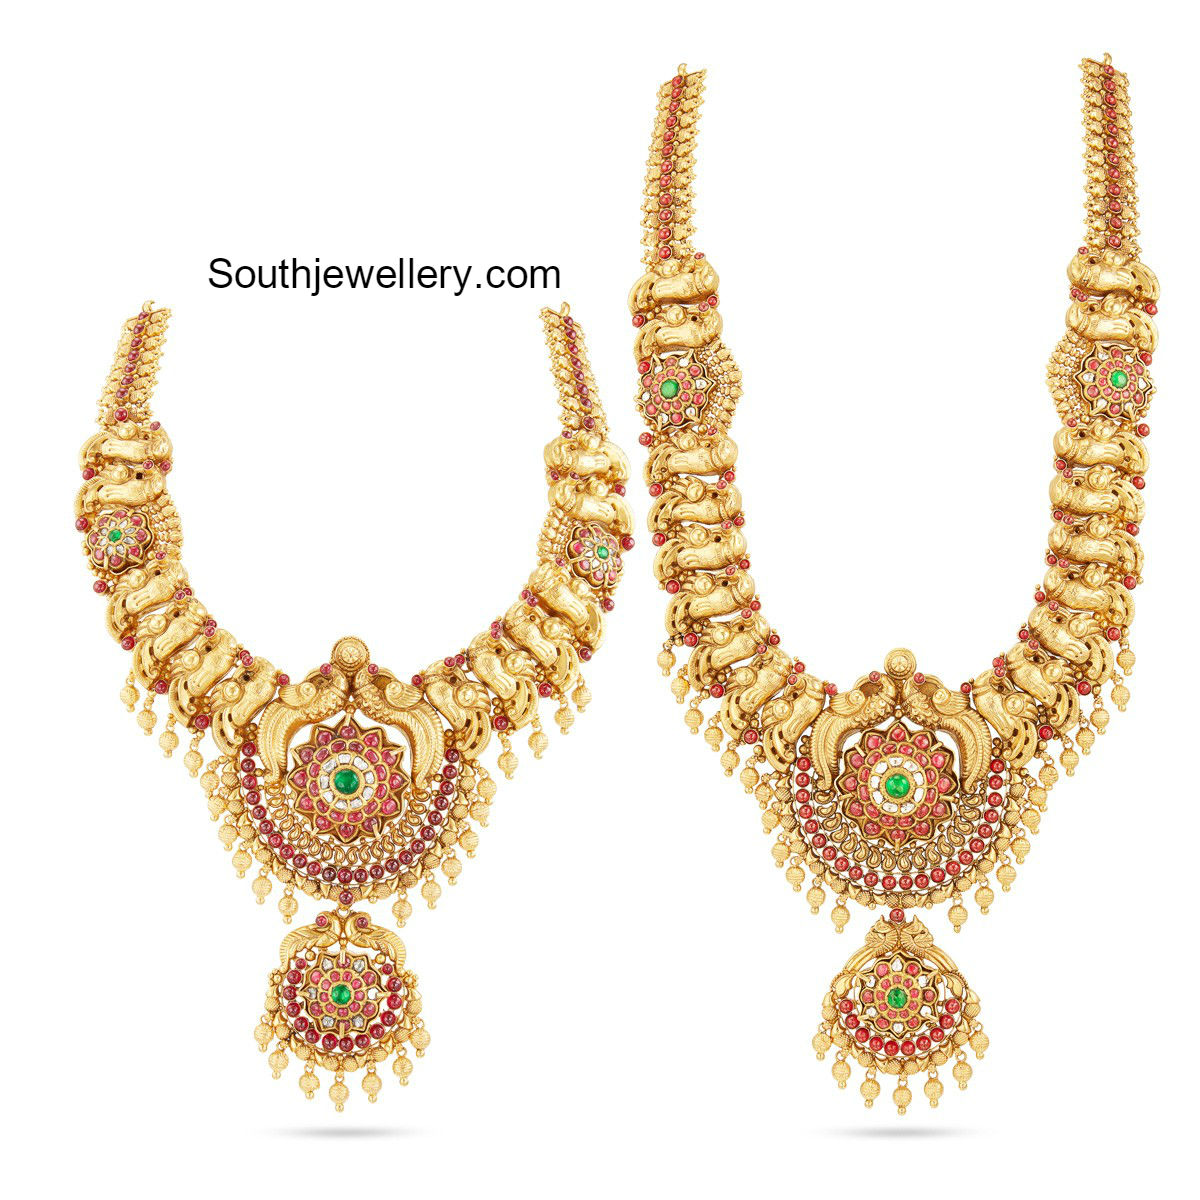 Vaddanam latest jewelry designs - Jewellery Designs